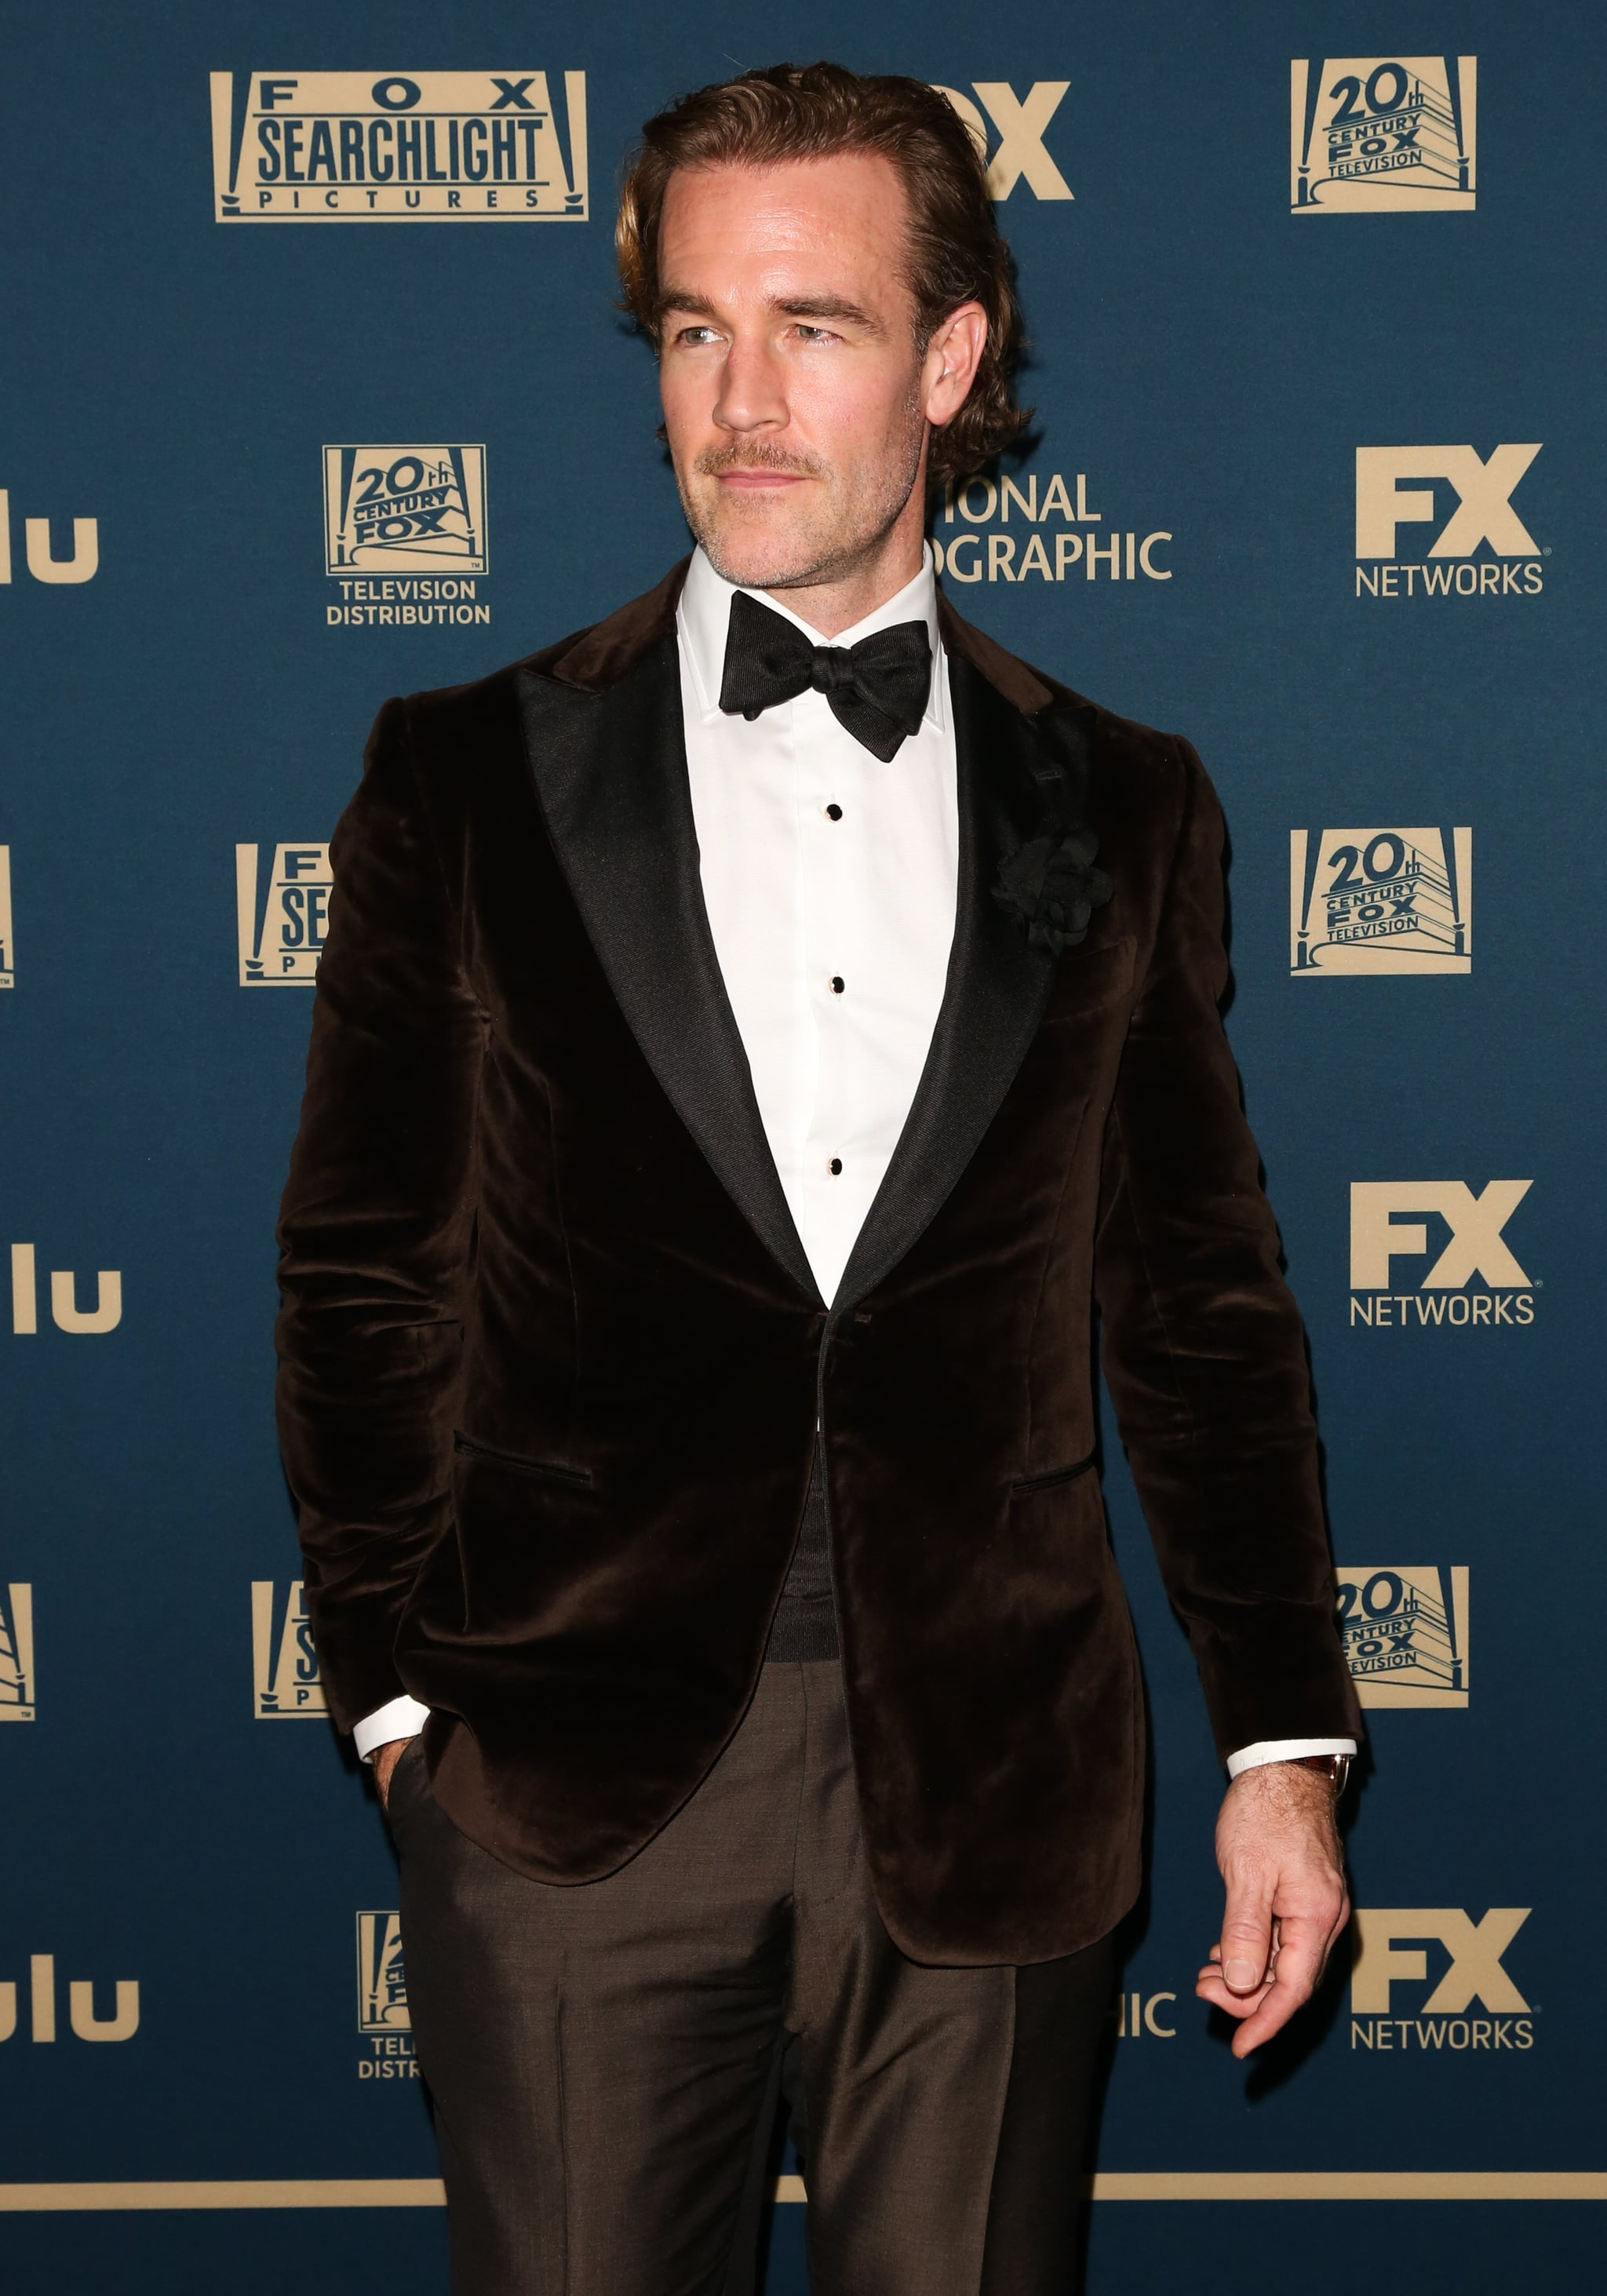 BEVERLY HILLS, CALIFORNIA - JANUARY 06: Actor James Van Der Beek attends the FOX, FX and Hulu 2019 Golden Globe Awards after party at The Beverly Hilton Hotel on January 06, 2019 in Beverly Hills, California. (Photo by Paul Archuleta/FilmMagic)